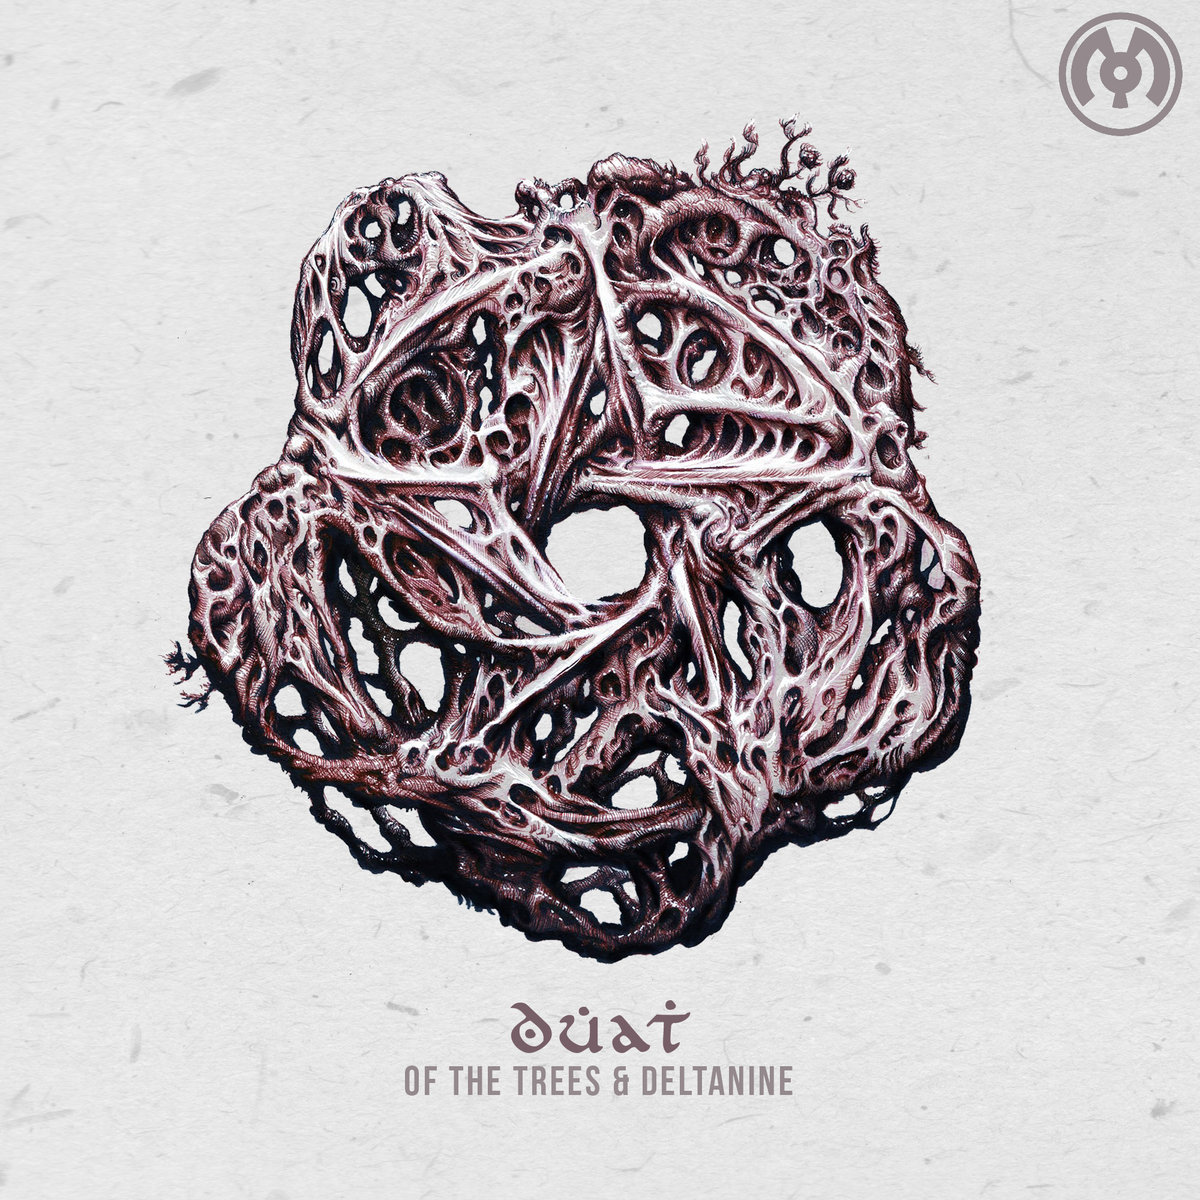 Of the Trees & DELTAnine - Duat @ 'Duat' album (electronic, dubstep)